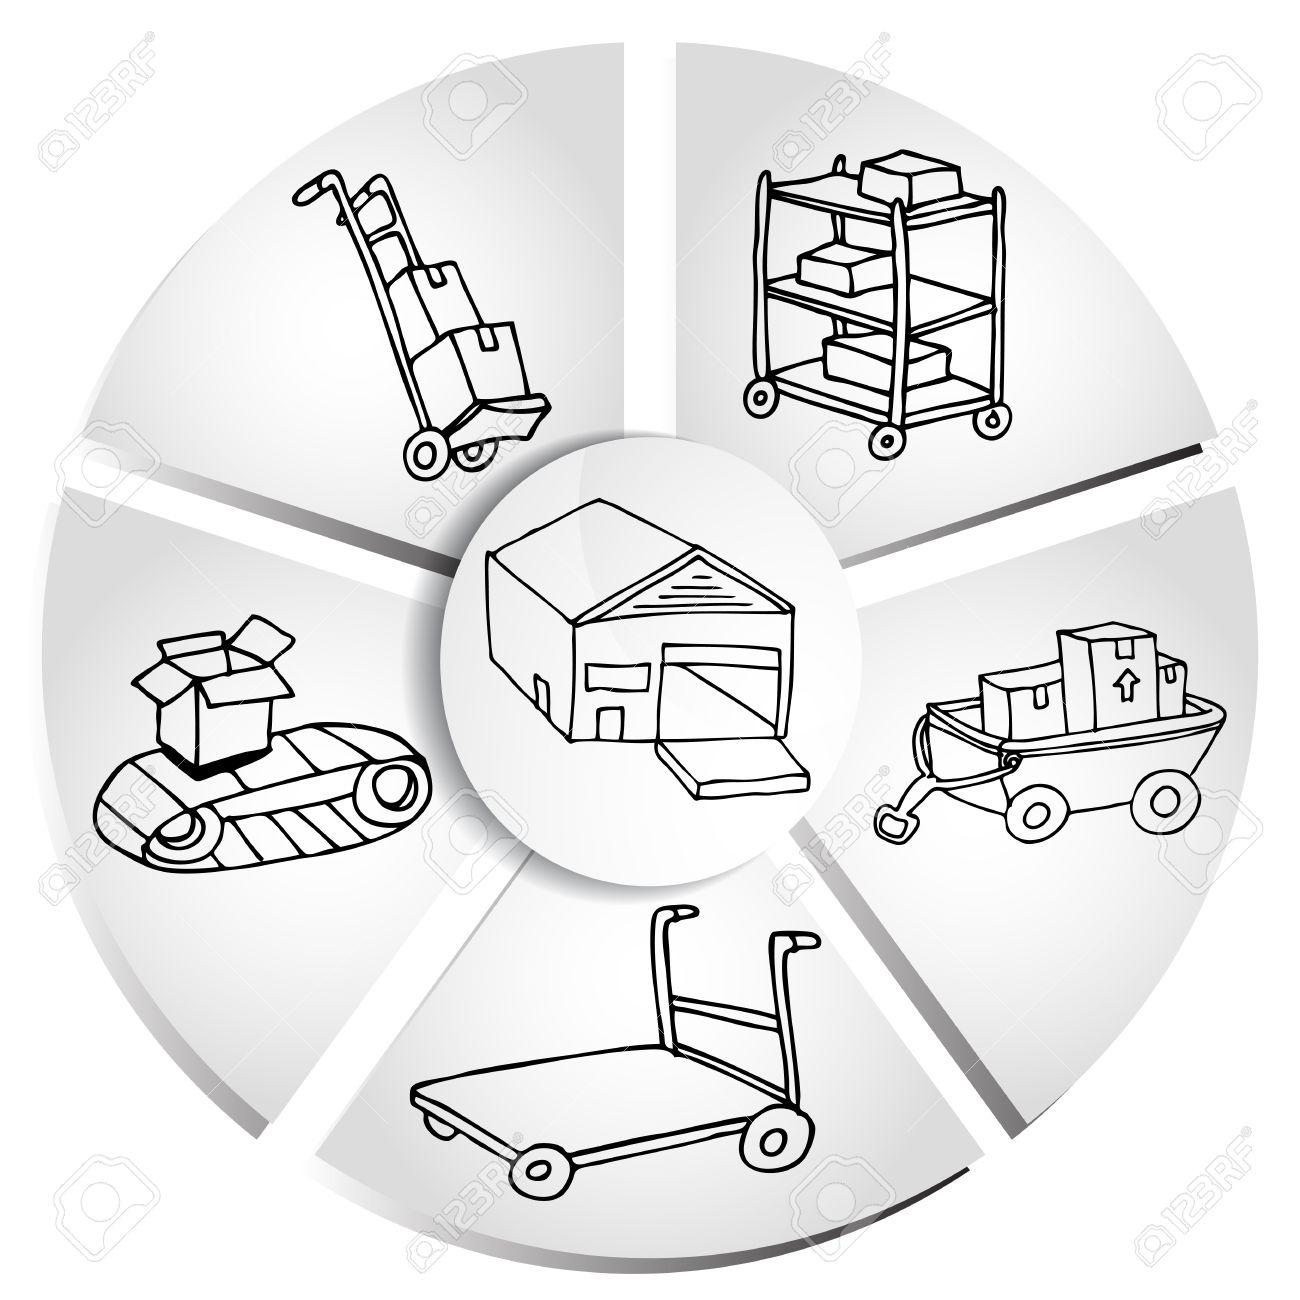 An image of a shipping box manufacturing chart royalty free an image of a shipping box manufacturing chart stock vector 10302345 buycottarizona Gallery